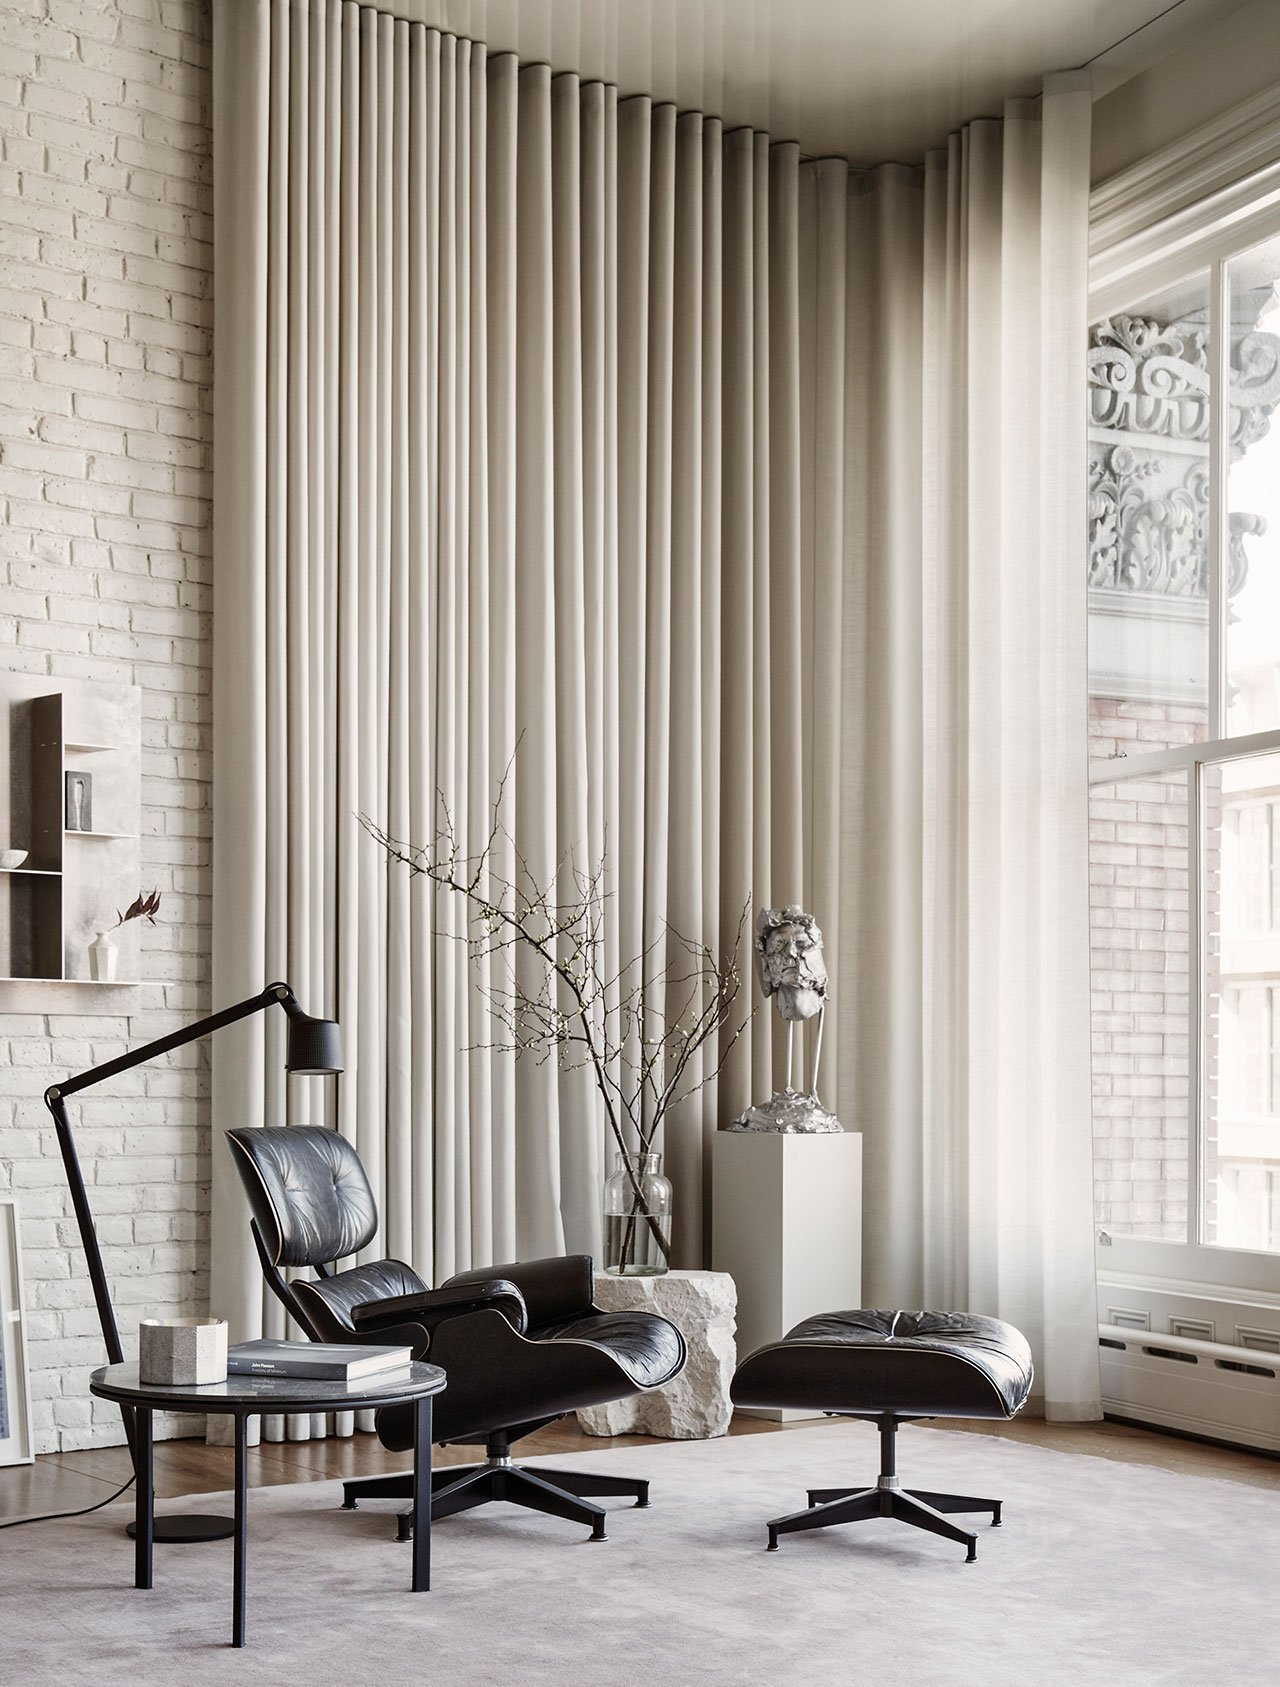 Photography by Adrian Gaut.Styling by Colin King. © Vipp Featured: Vipp side table, Eames Lounge Chair by Charles & Ray Eames, Custom Eric Bruce Kvadrat cotton curtains.